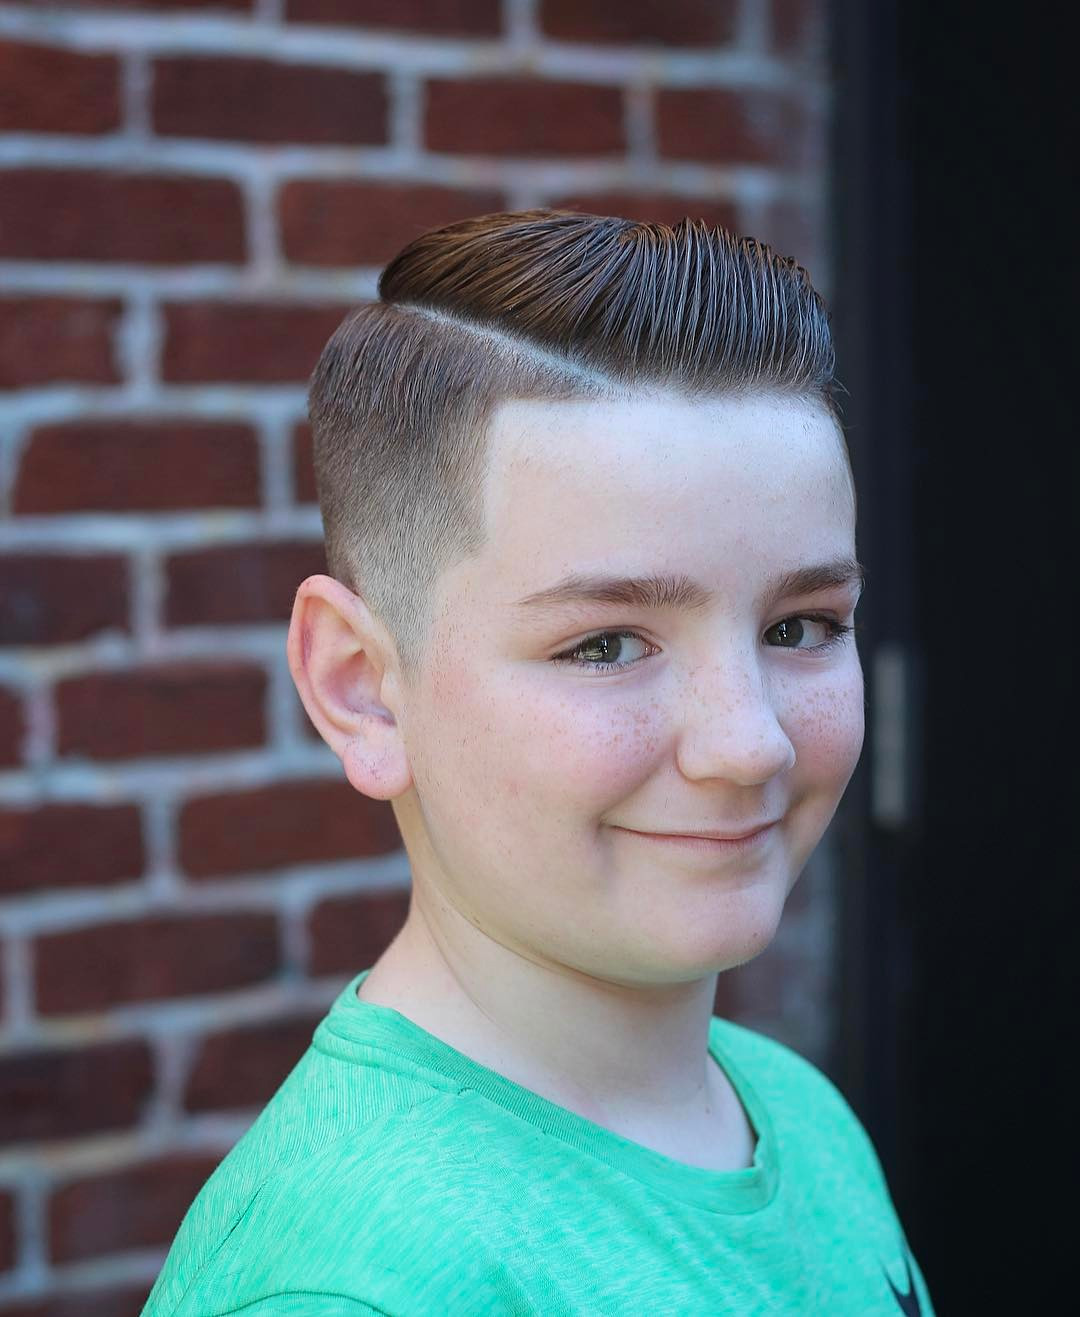 Best ideas about Boys Hairstyle . Save or Pin Top 16 Beautiful Boys Haircuts Hairstyles 2018 Now.